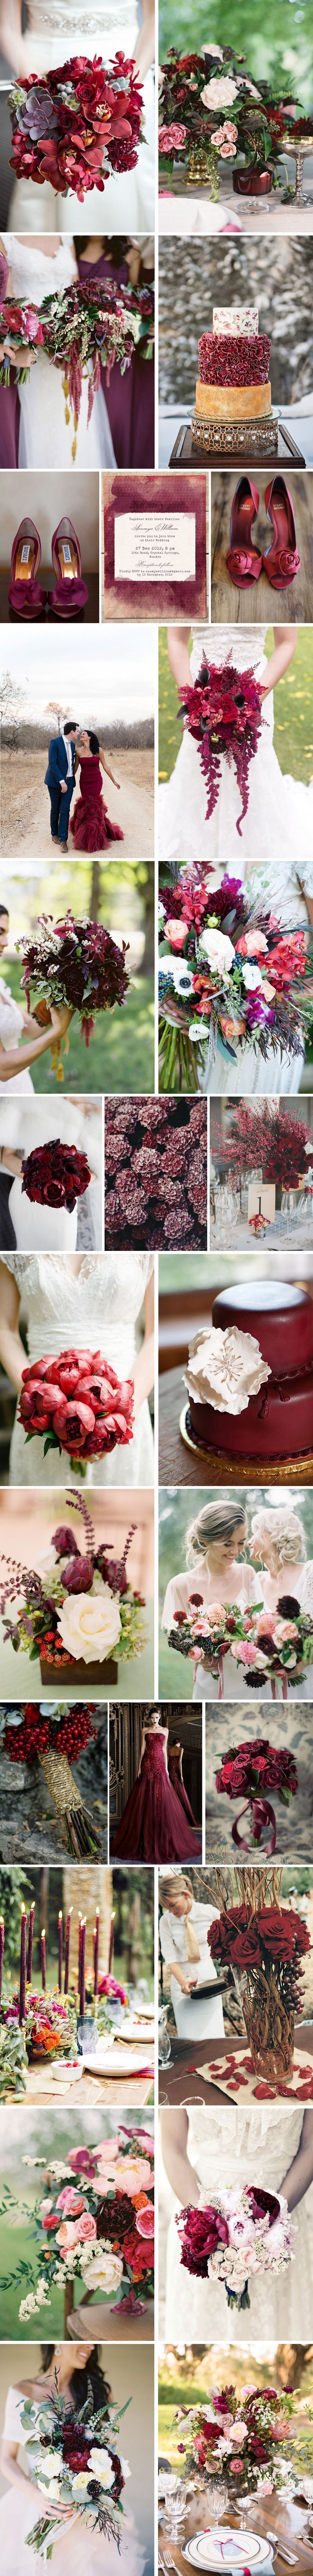 pantone color of 2015 marsala wedding color ideas - Deer Pearl Flowers… -repinned from Los Angeles County, CA celebrant https://OfficiantGuy.com